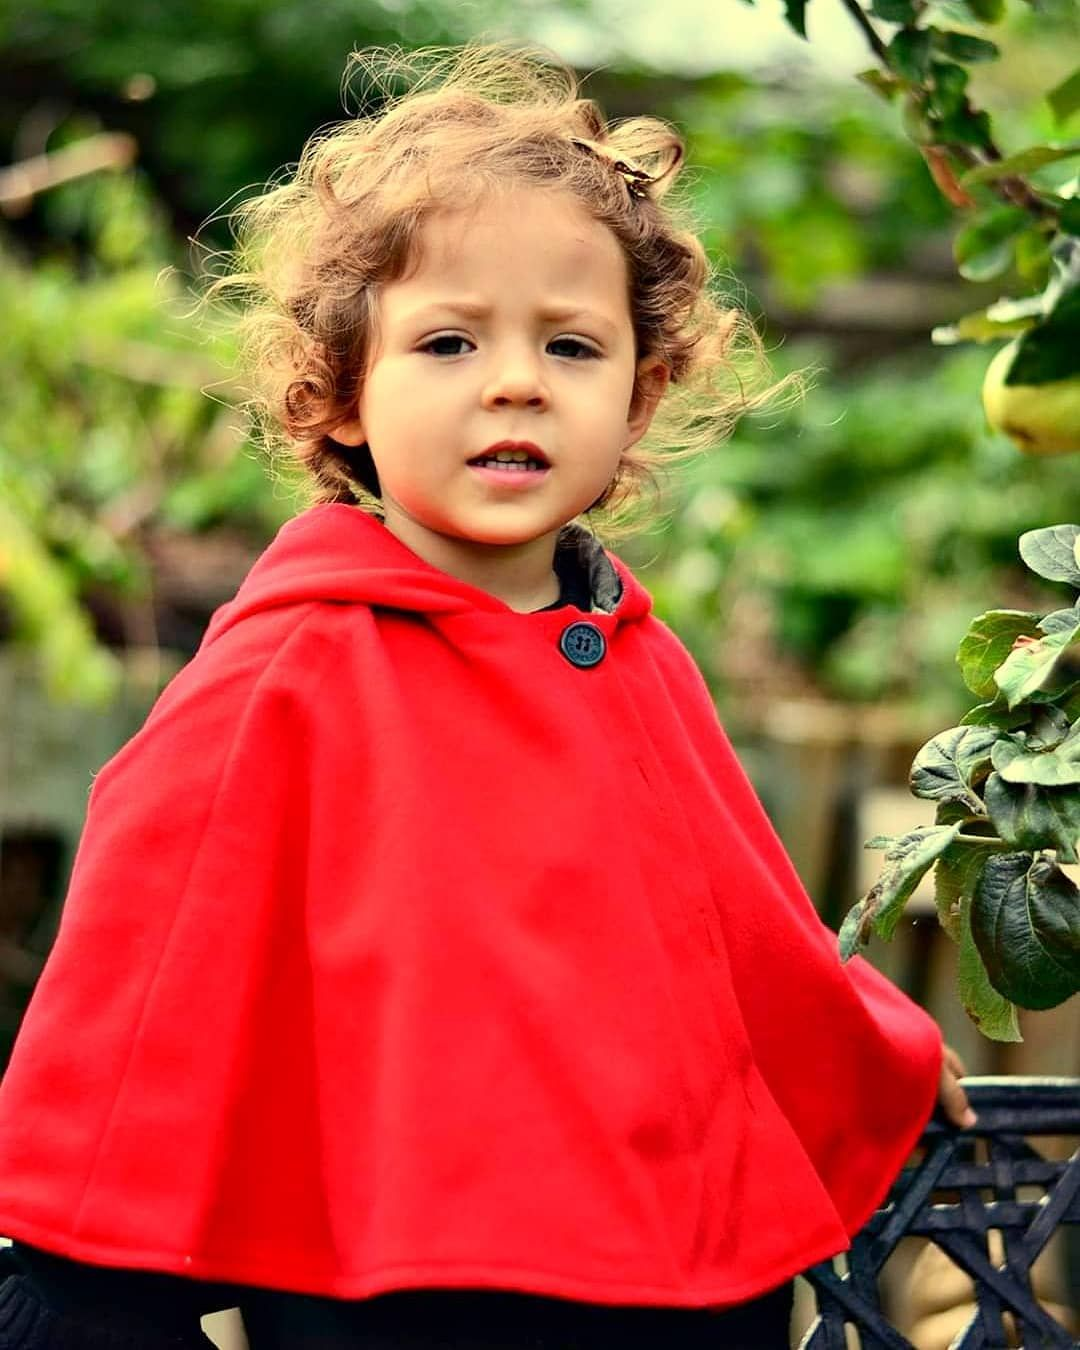 When in doubt, wear red #burberry #burberrykids #burberrycoat #childmodel #minifashionista #minime #fashionista...When in doubt, wear red #burberry #burberrykids #burberrycoat #childmodel #minifashionista #minime #fashionista #shopaholic #shopaholicmom #childphotography #curlyhair #childportrait #lifewithkids #dailypicture #dailypic #instafashion #instadaily #momlife #mumlife #childhood #dailyquotes #fashionquotes #redcoat #toddlers #toddlersofig #toddlersofinstagram #toddlerlife #toddlerfashion